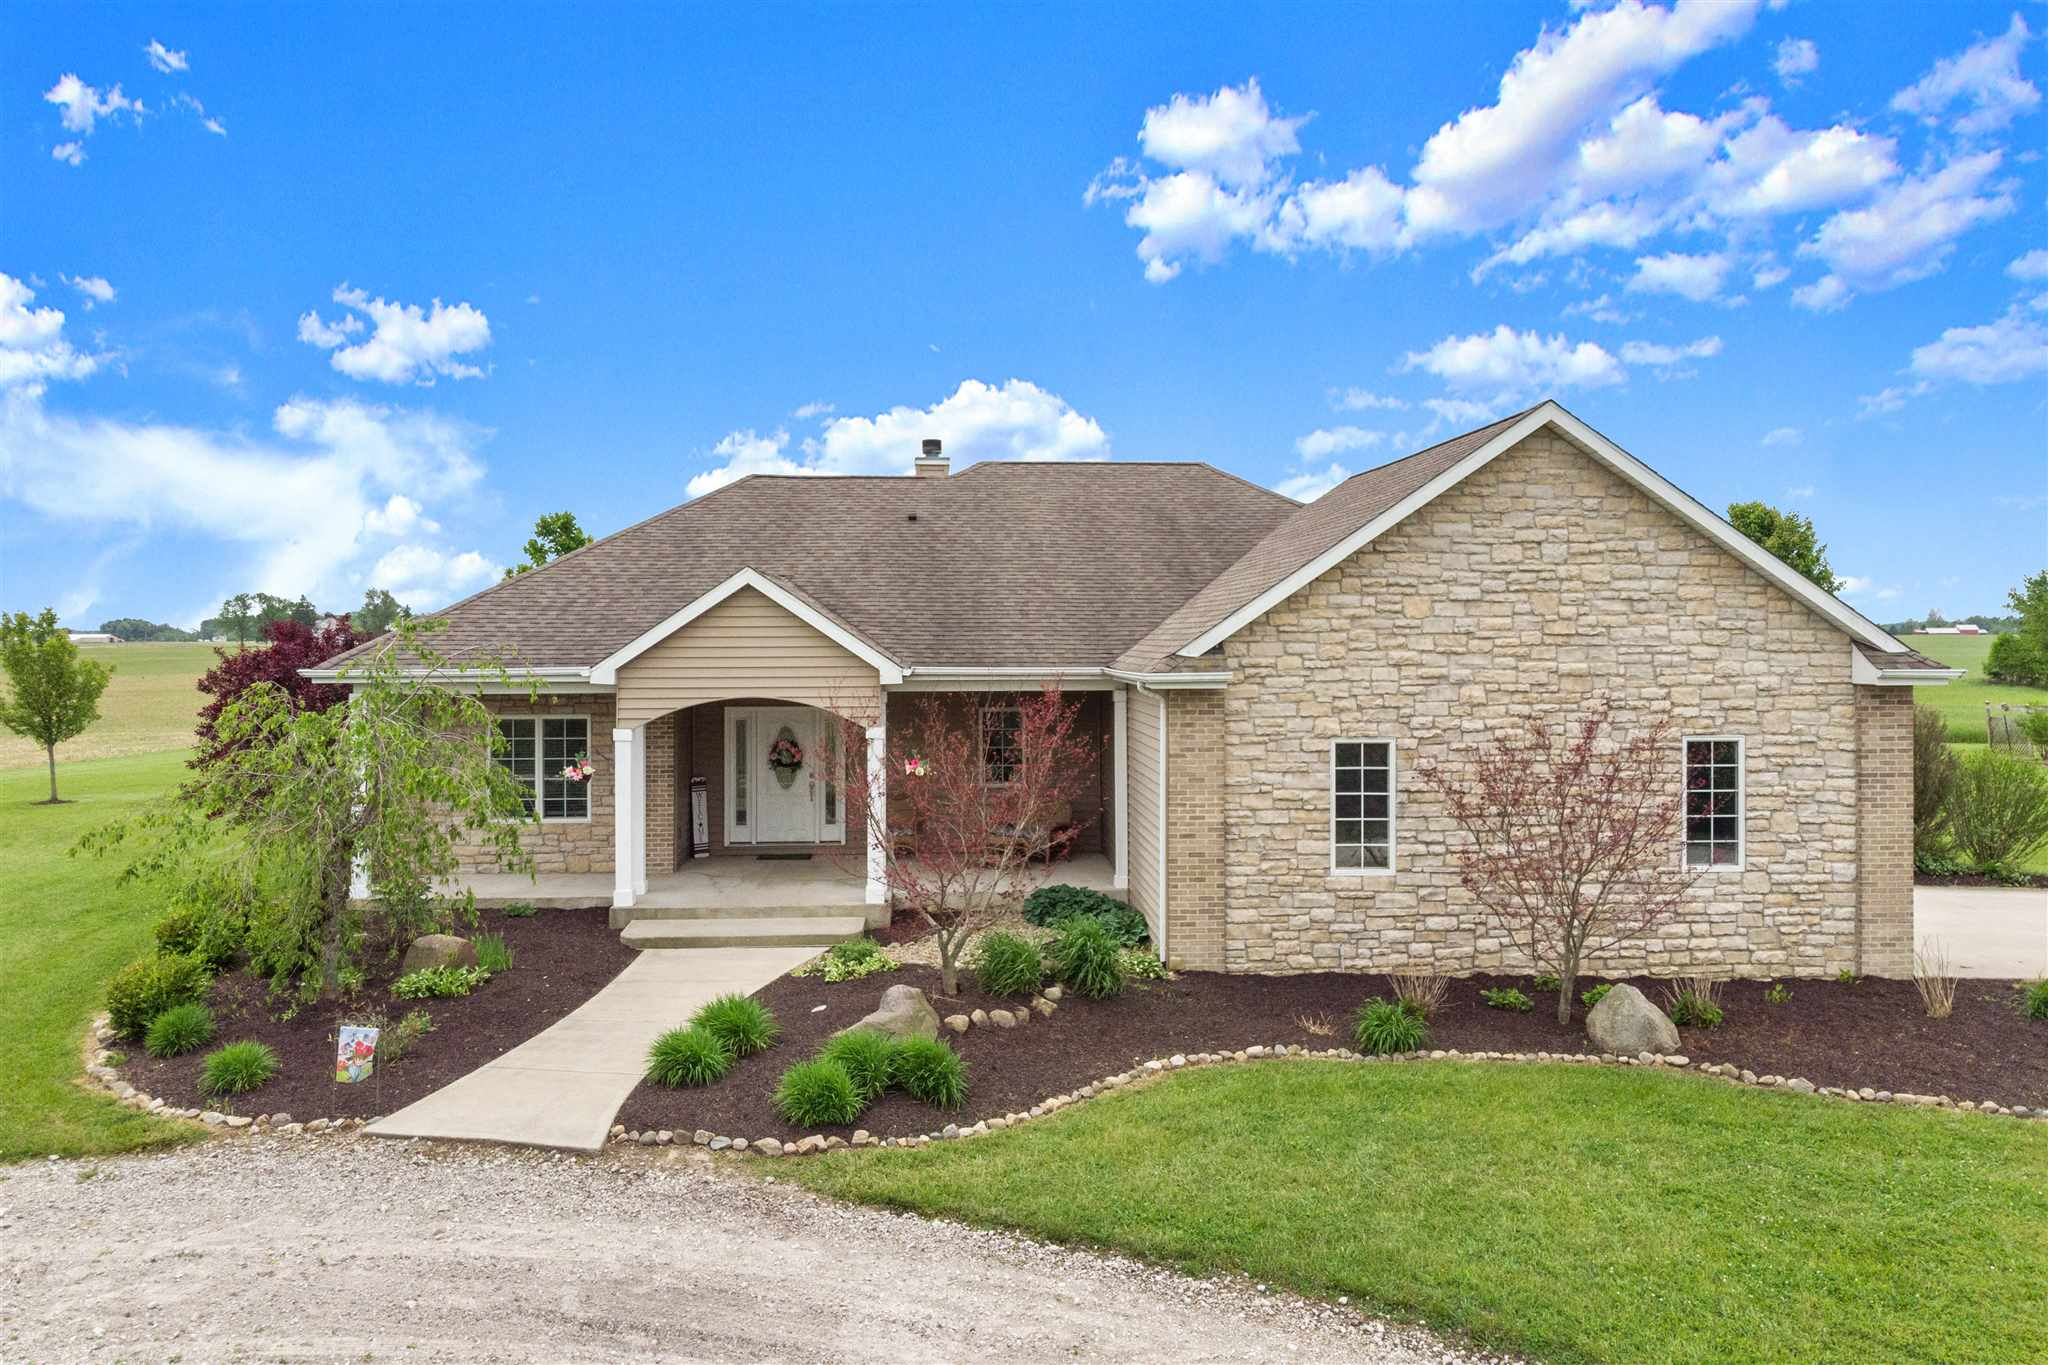 6818 E 700 South, Columbia City, IN 46725